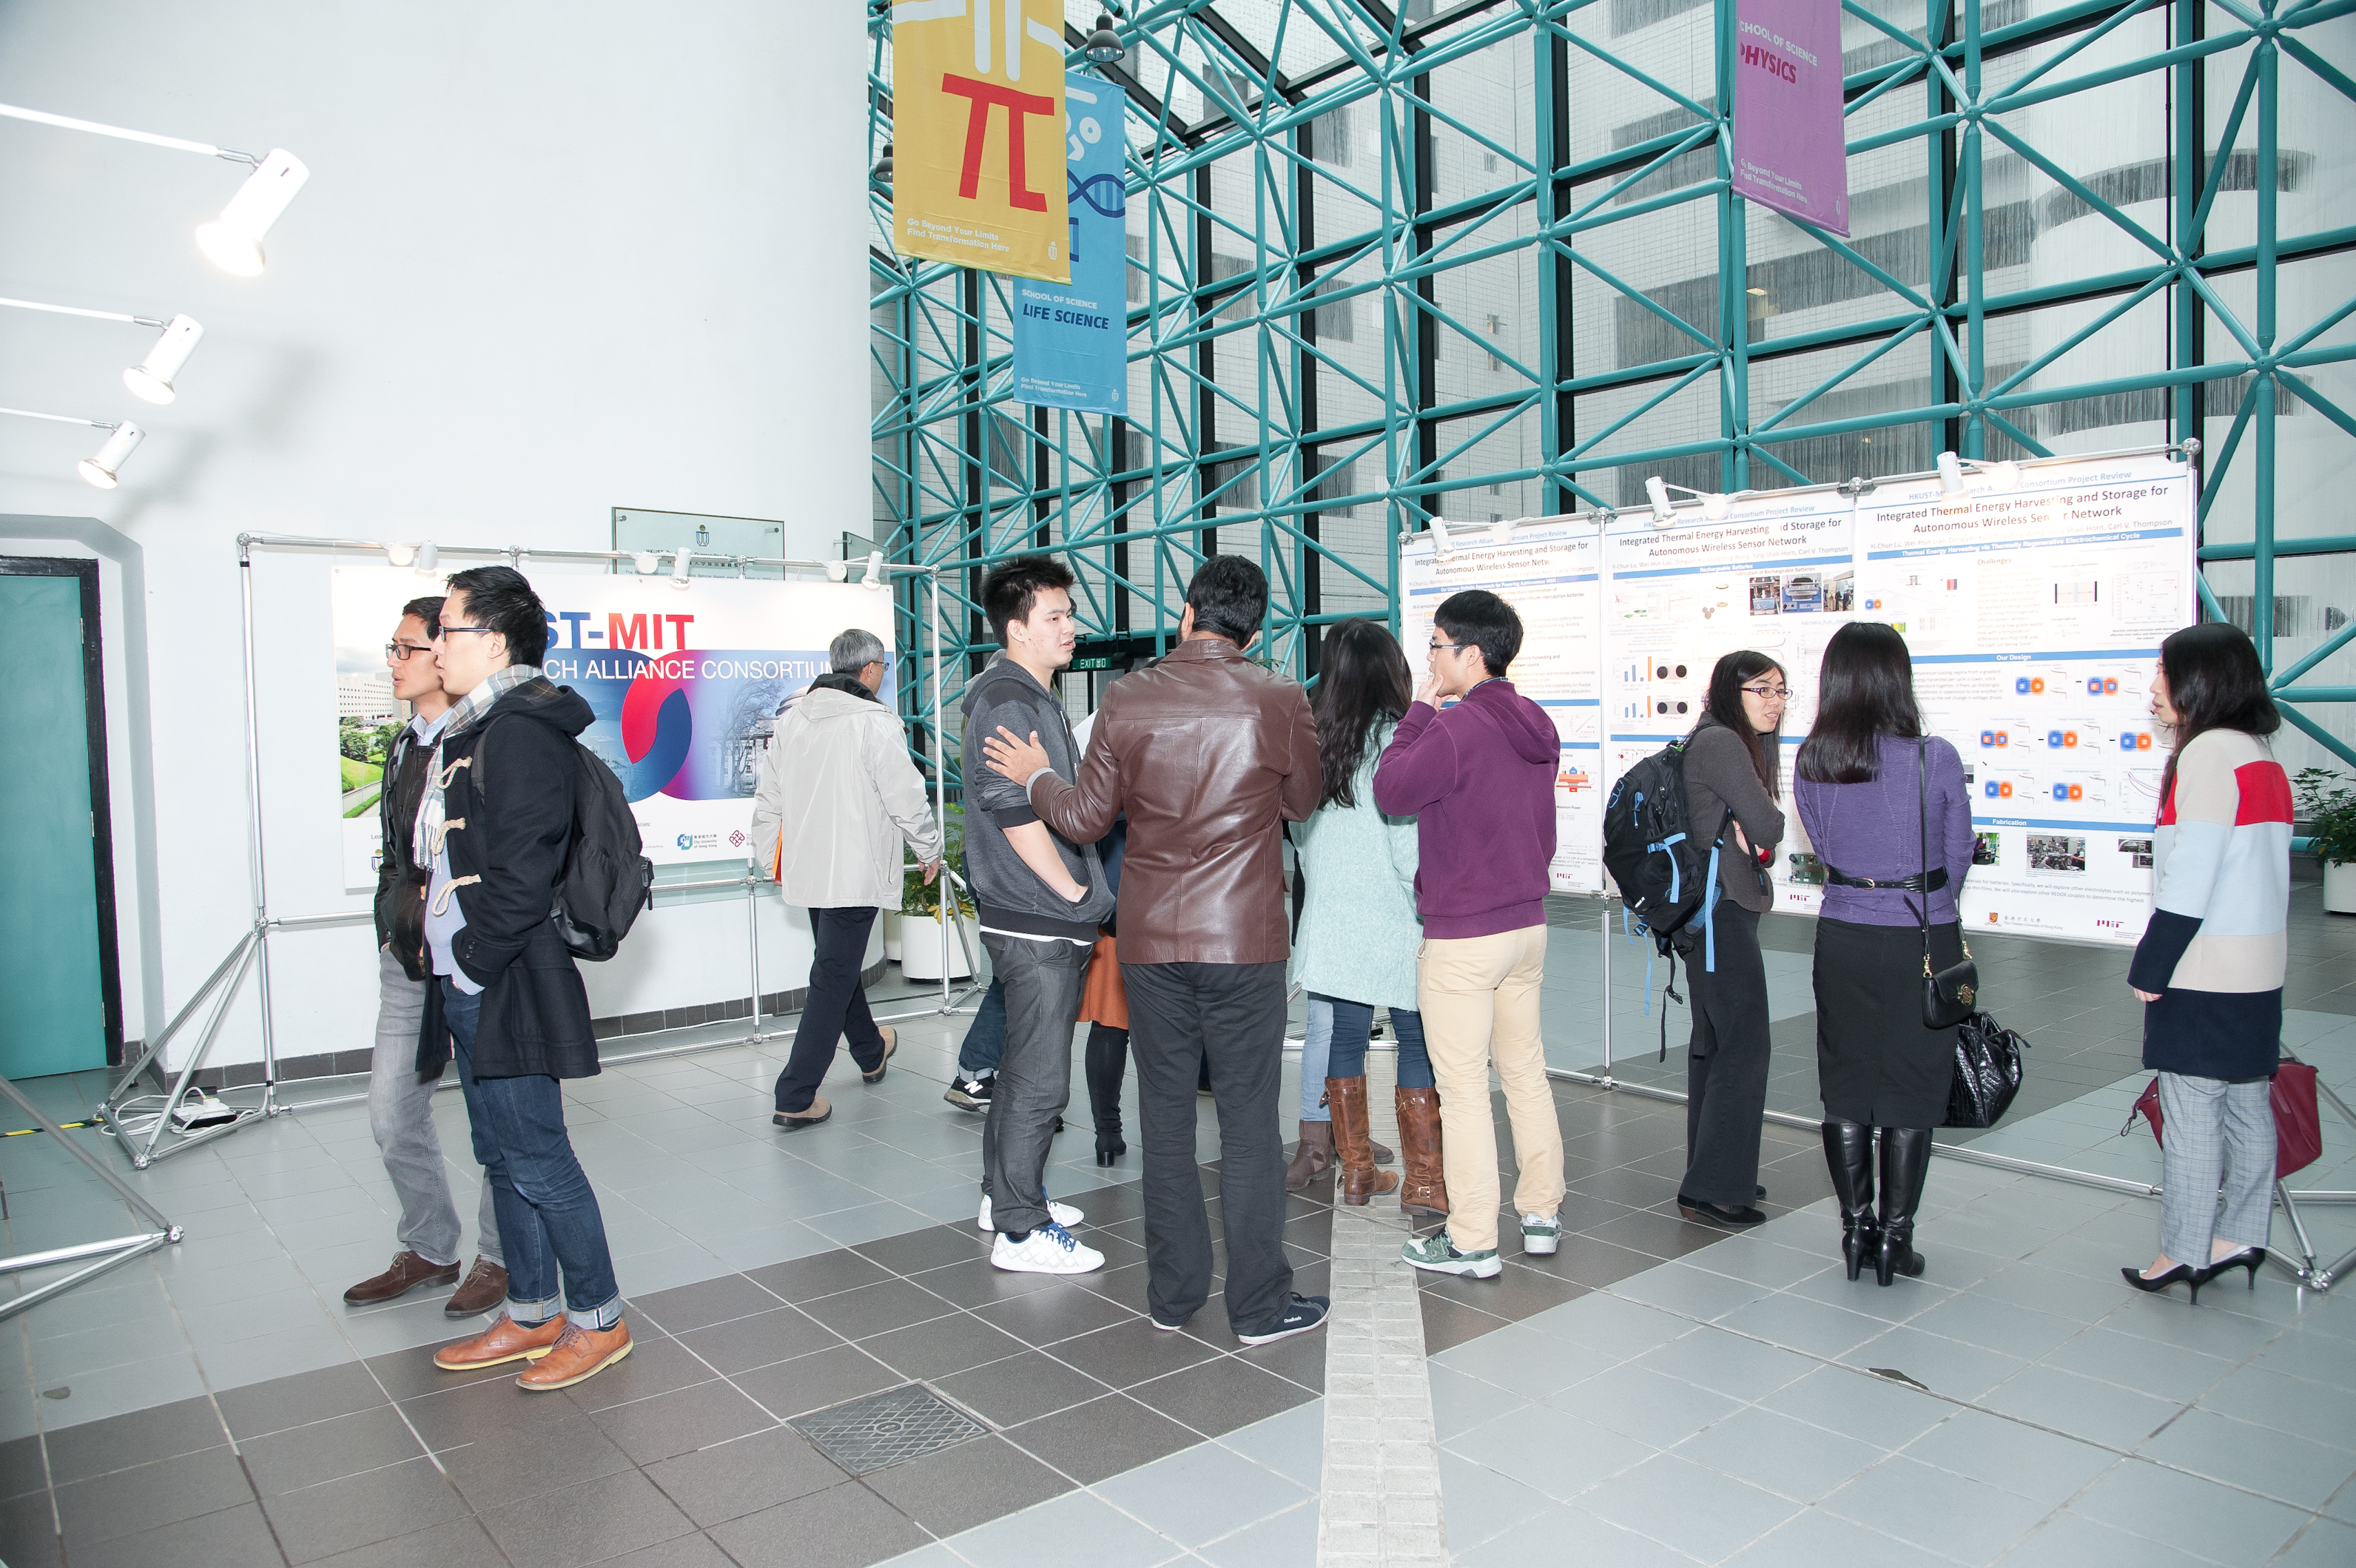 HKU_Res_All_Con_P14567_01_010